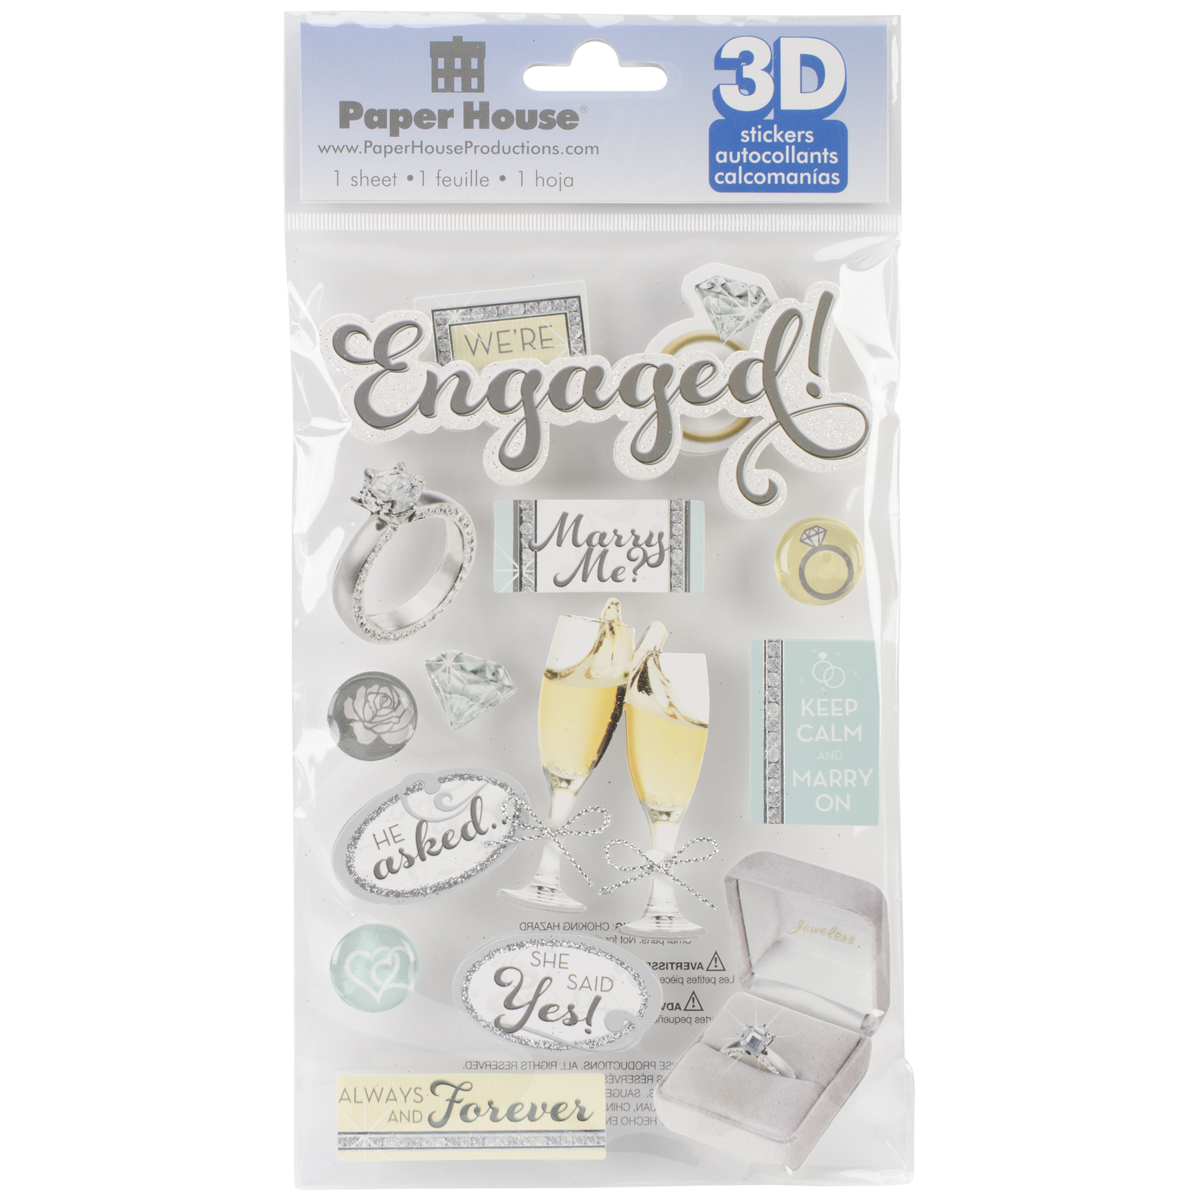 ENGAGED   -3D STICKERS